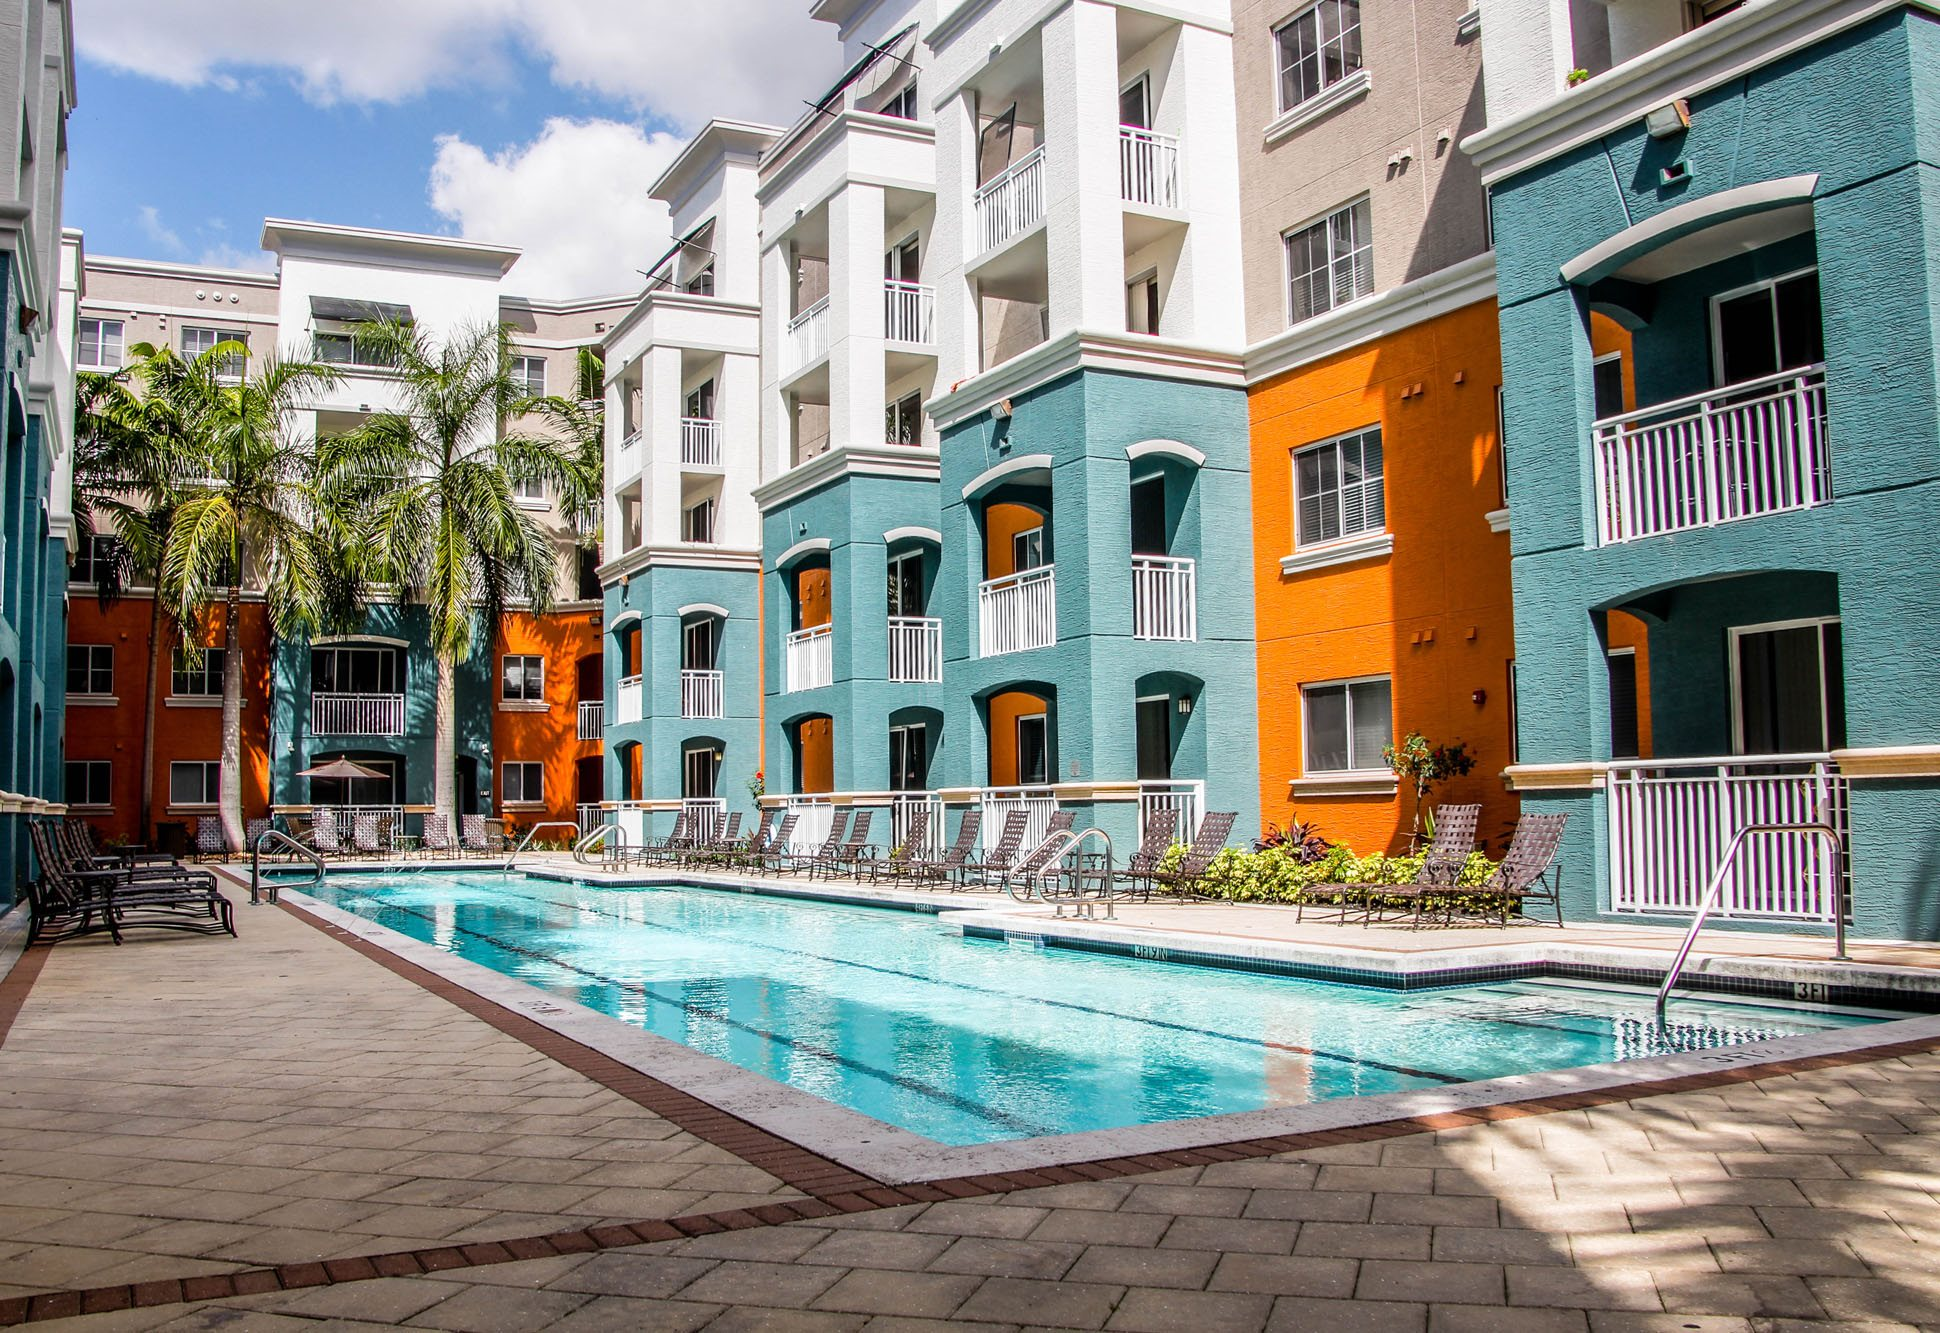 Red Road Commons Student Living offers great pool and courtyard views